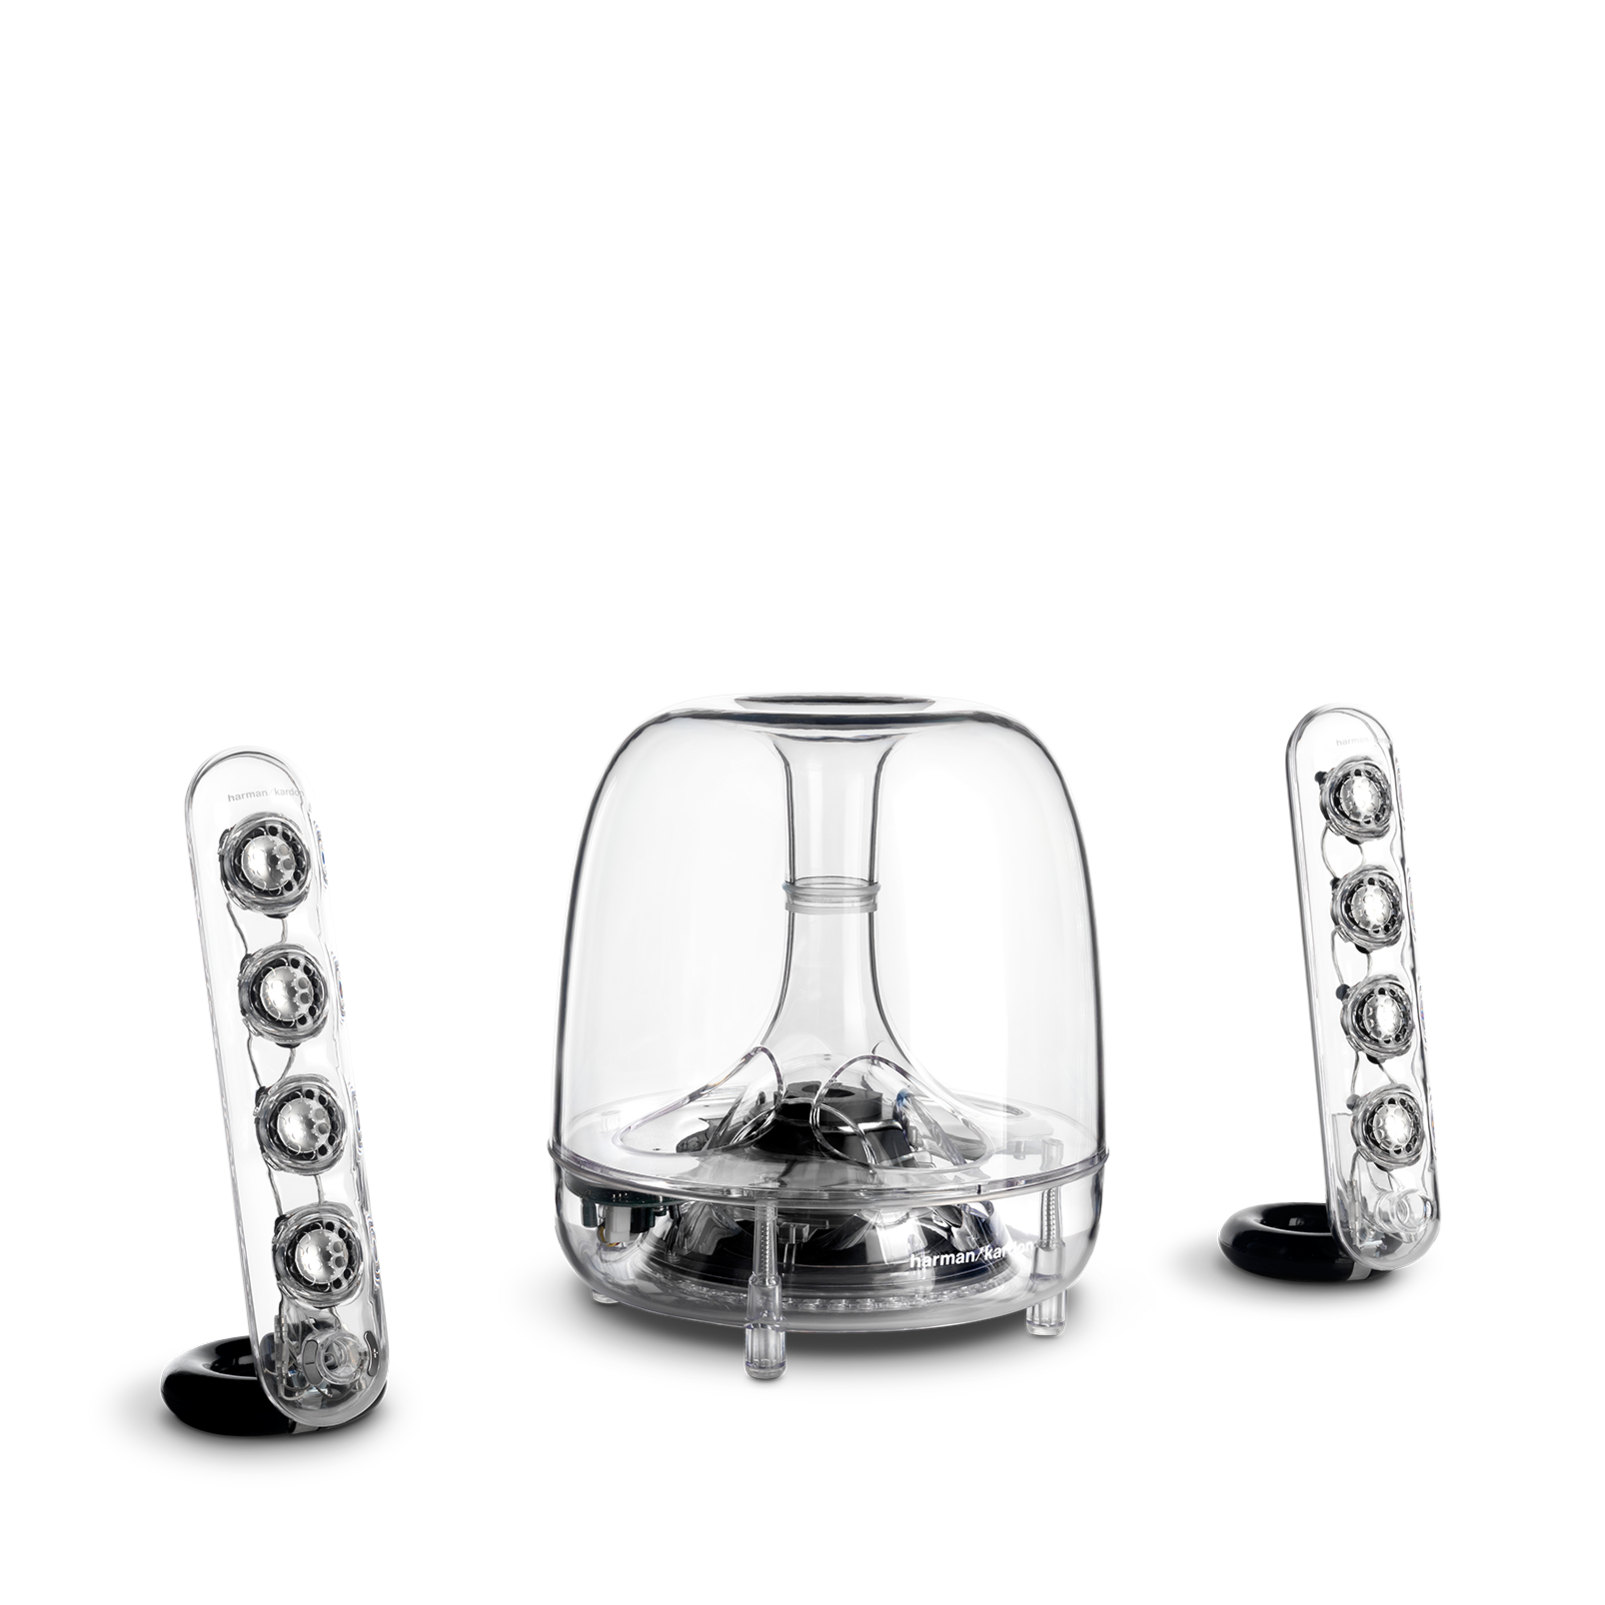 Harman Kardon SoundSticks III 2.1 Channel Speaker System $140 + FS